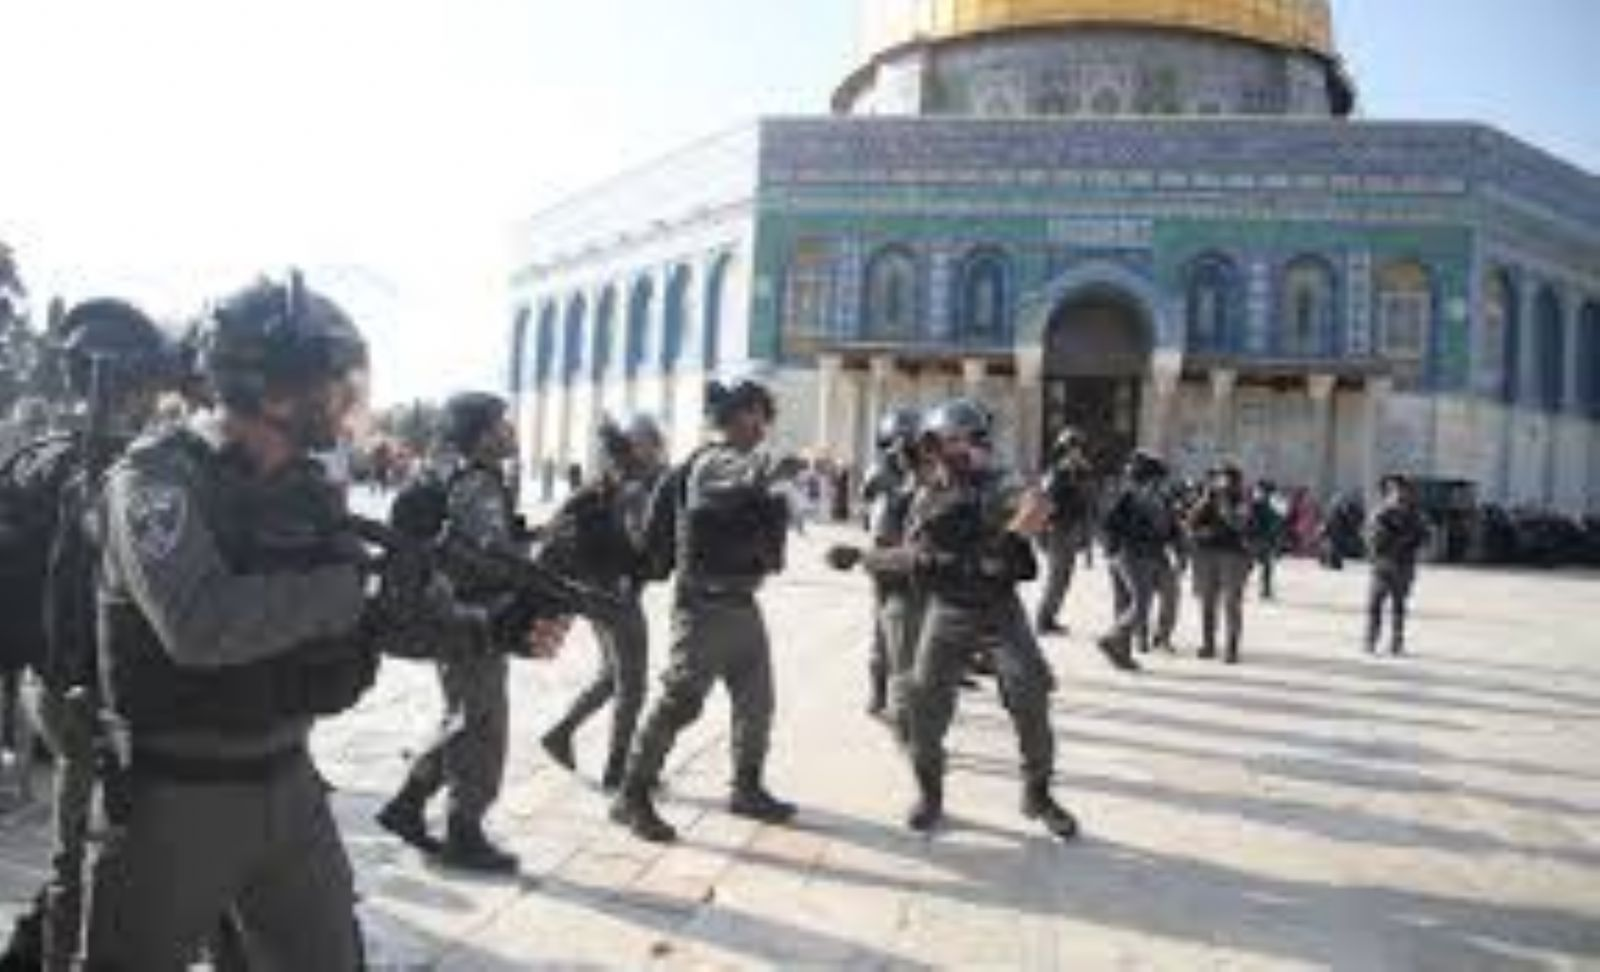 Israeli forces damage documents in Al-Aqsa Mosque raid